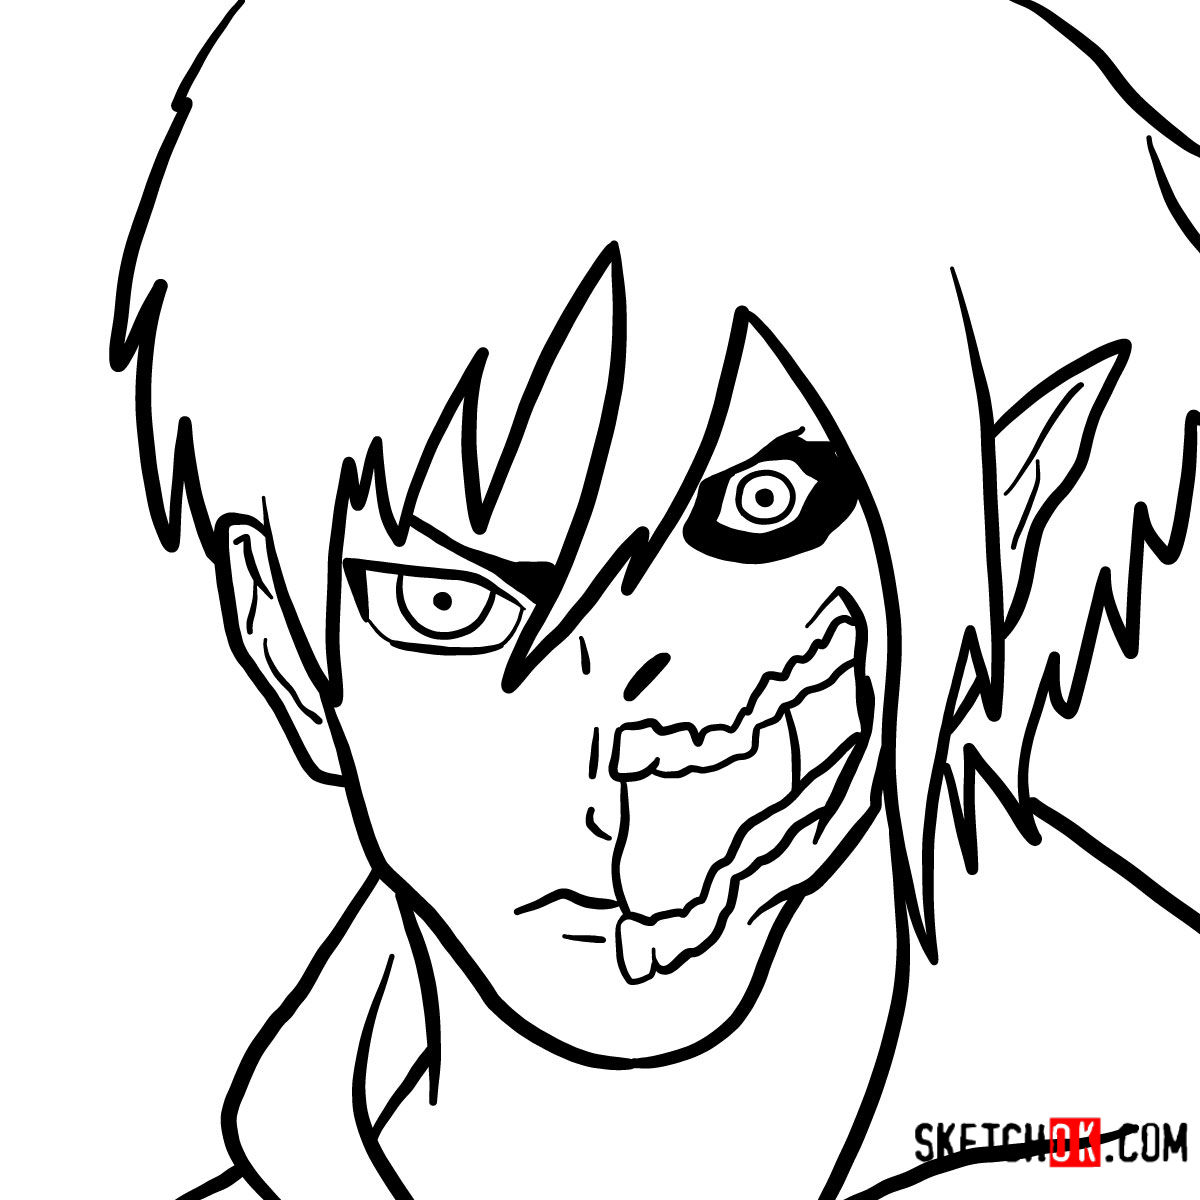 How to draw Eren Jaeger half human half titan